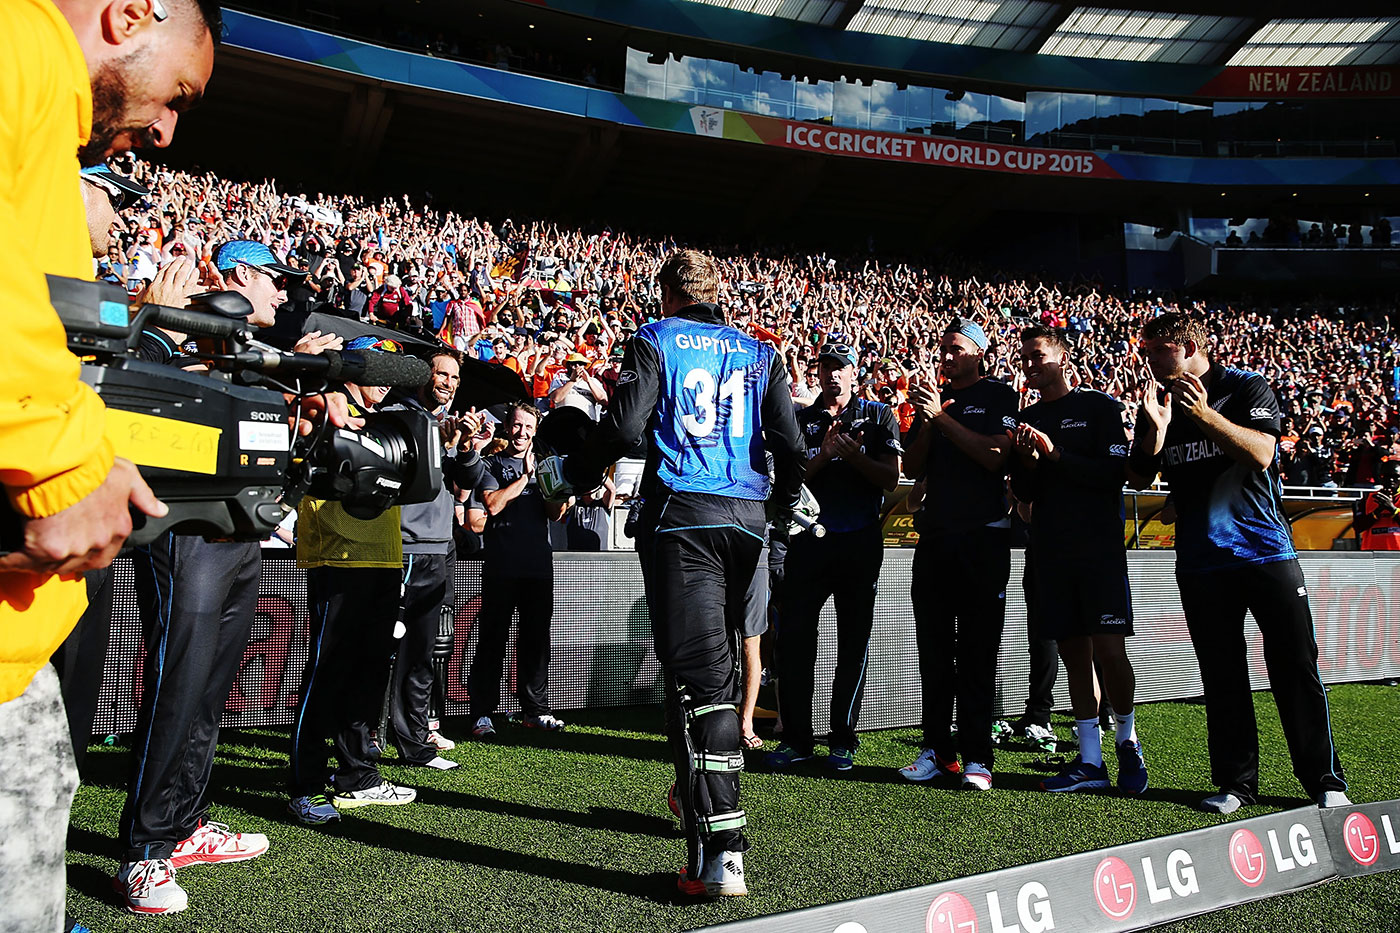 Martin Guptill's 237 took New Zealand to the 2015 World Cup semi-finals